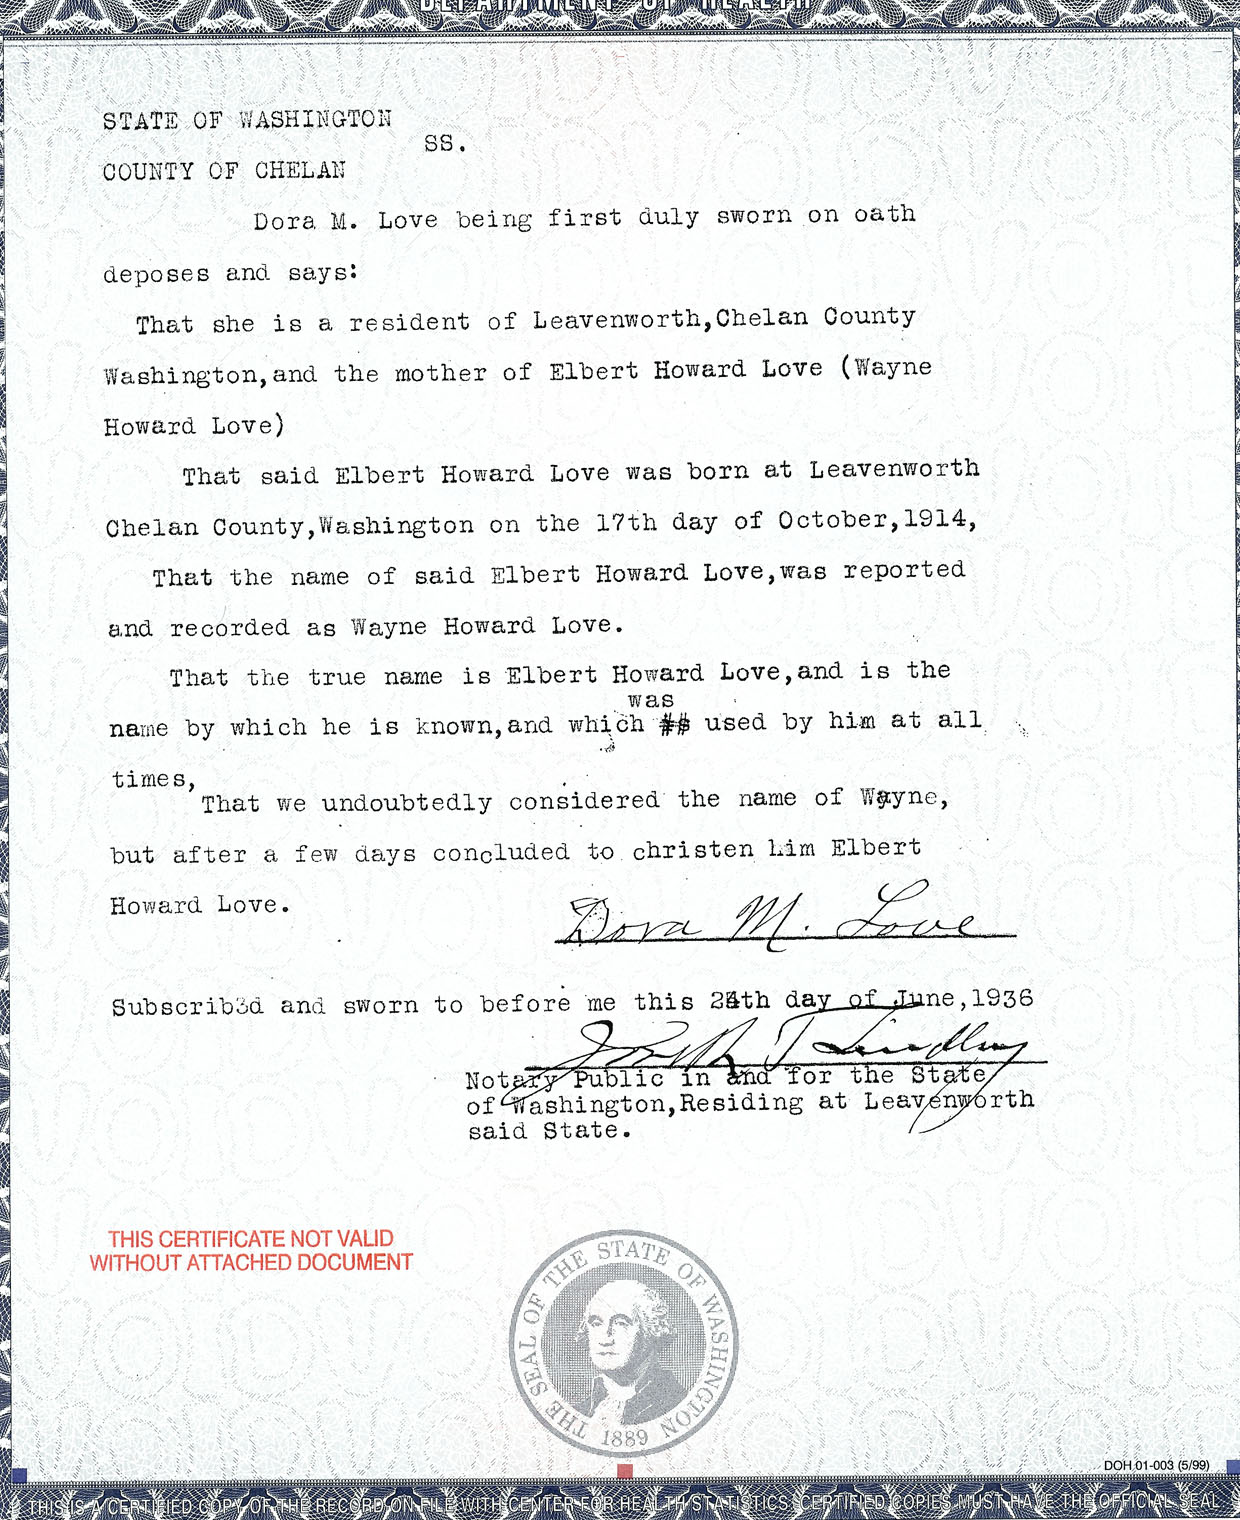 Documents birth certificate love elbert certified name change documents birth certificate love elbert certified name change wayne to elbert 24 jun 1936 1betcityfo Images